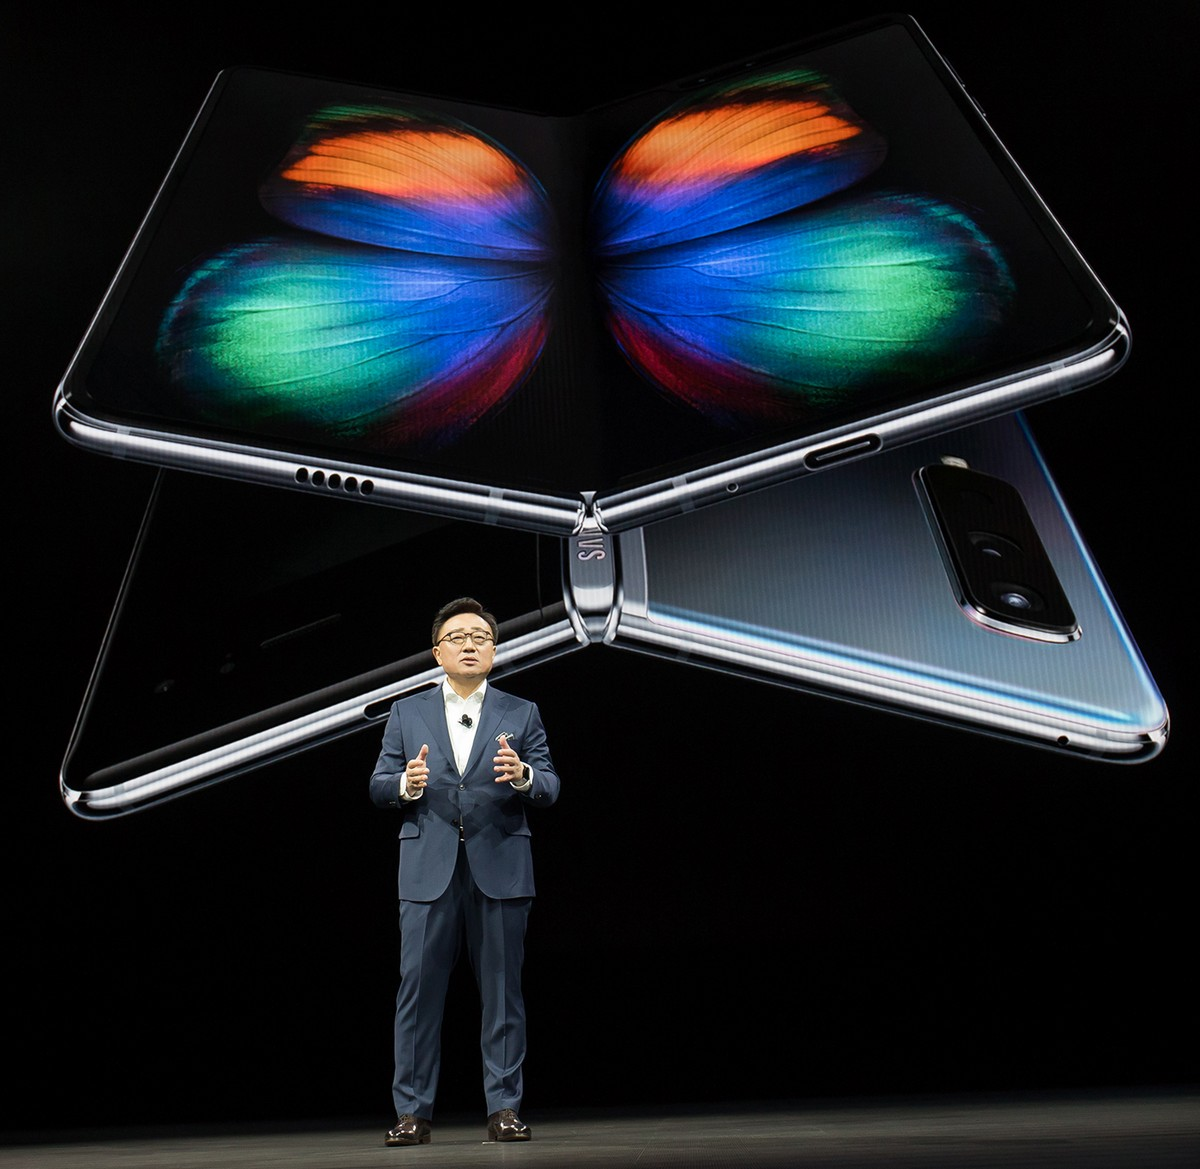 By Now Many Have Heard That The Samsung Galaxy Fold Has Been Officially Delayed In Order For Samsung To Fix The Durability Issues That Were Found With The